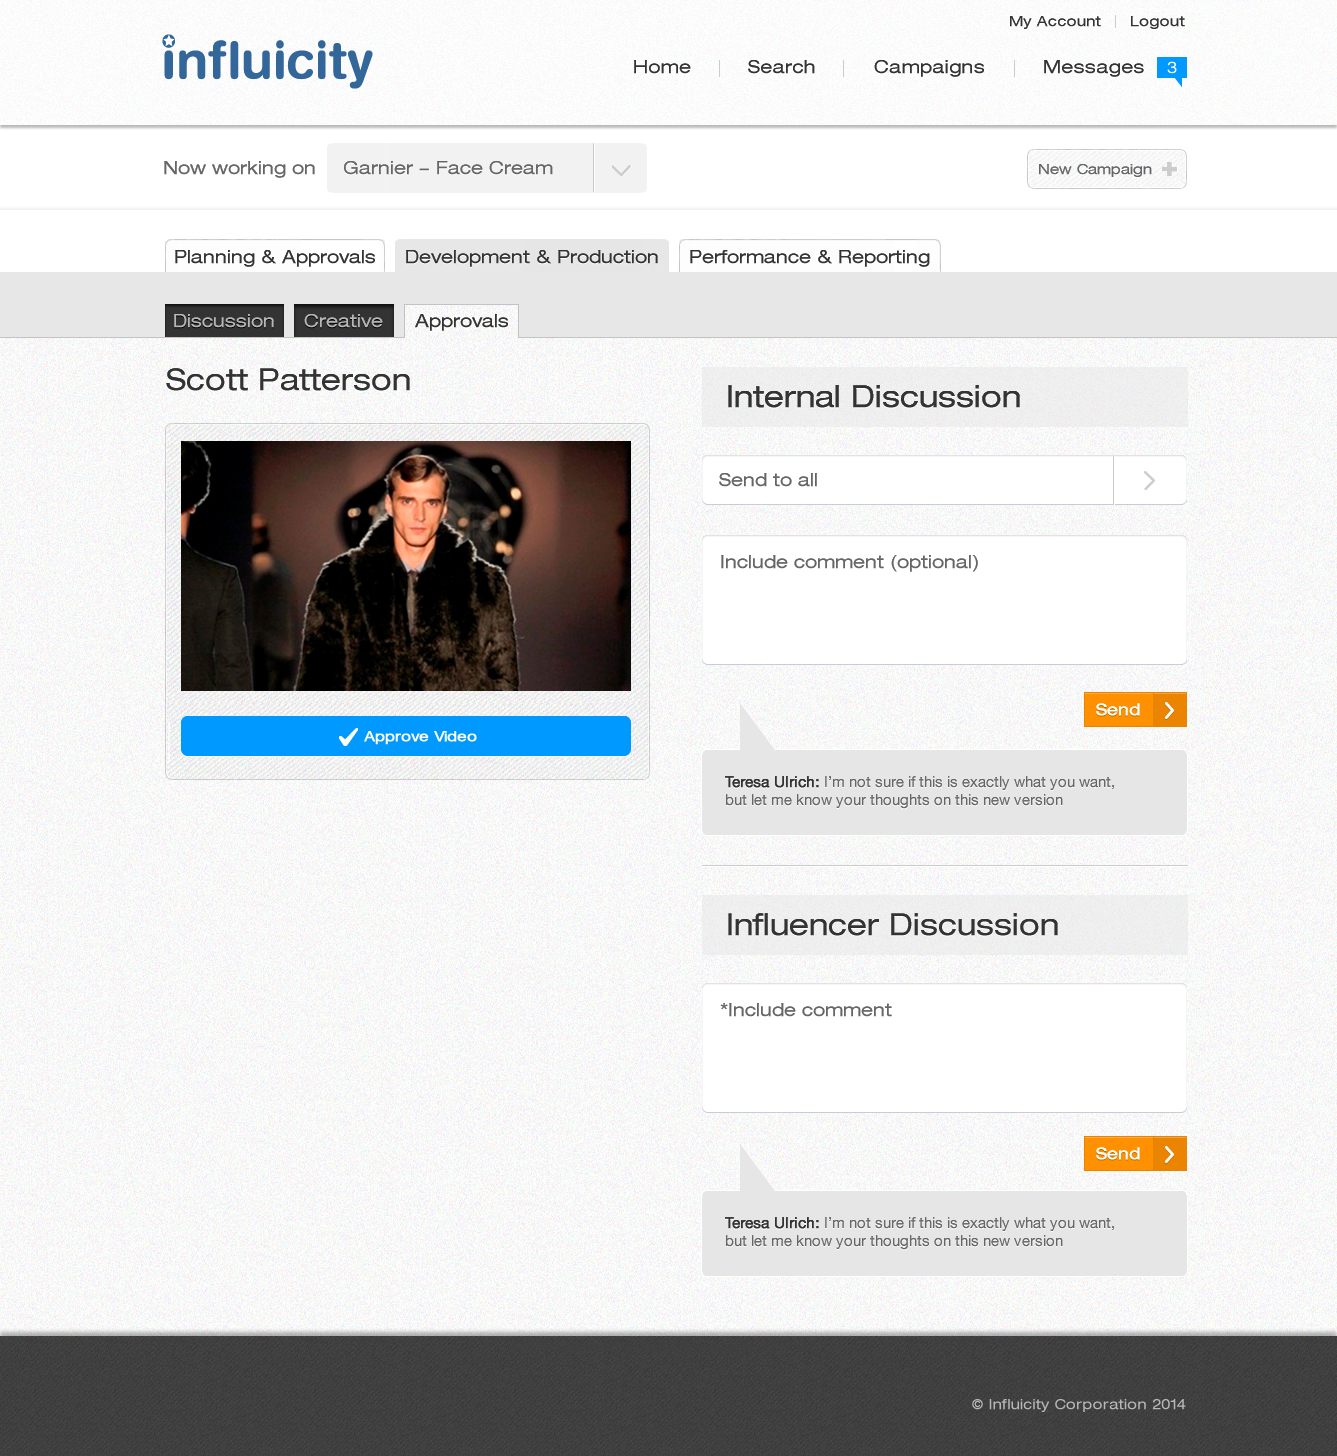 Influicity's video approval page, where marketers can see their influencer's video and discuss with their team.